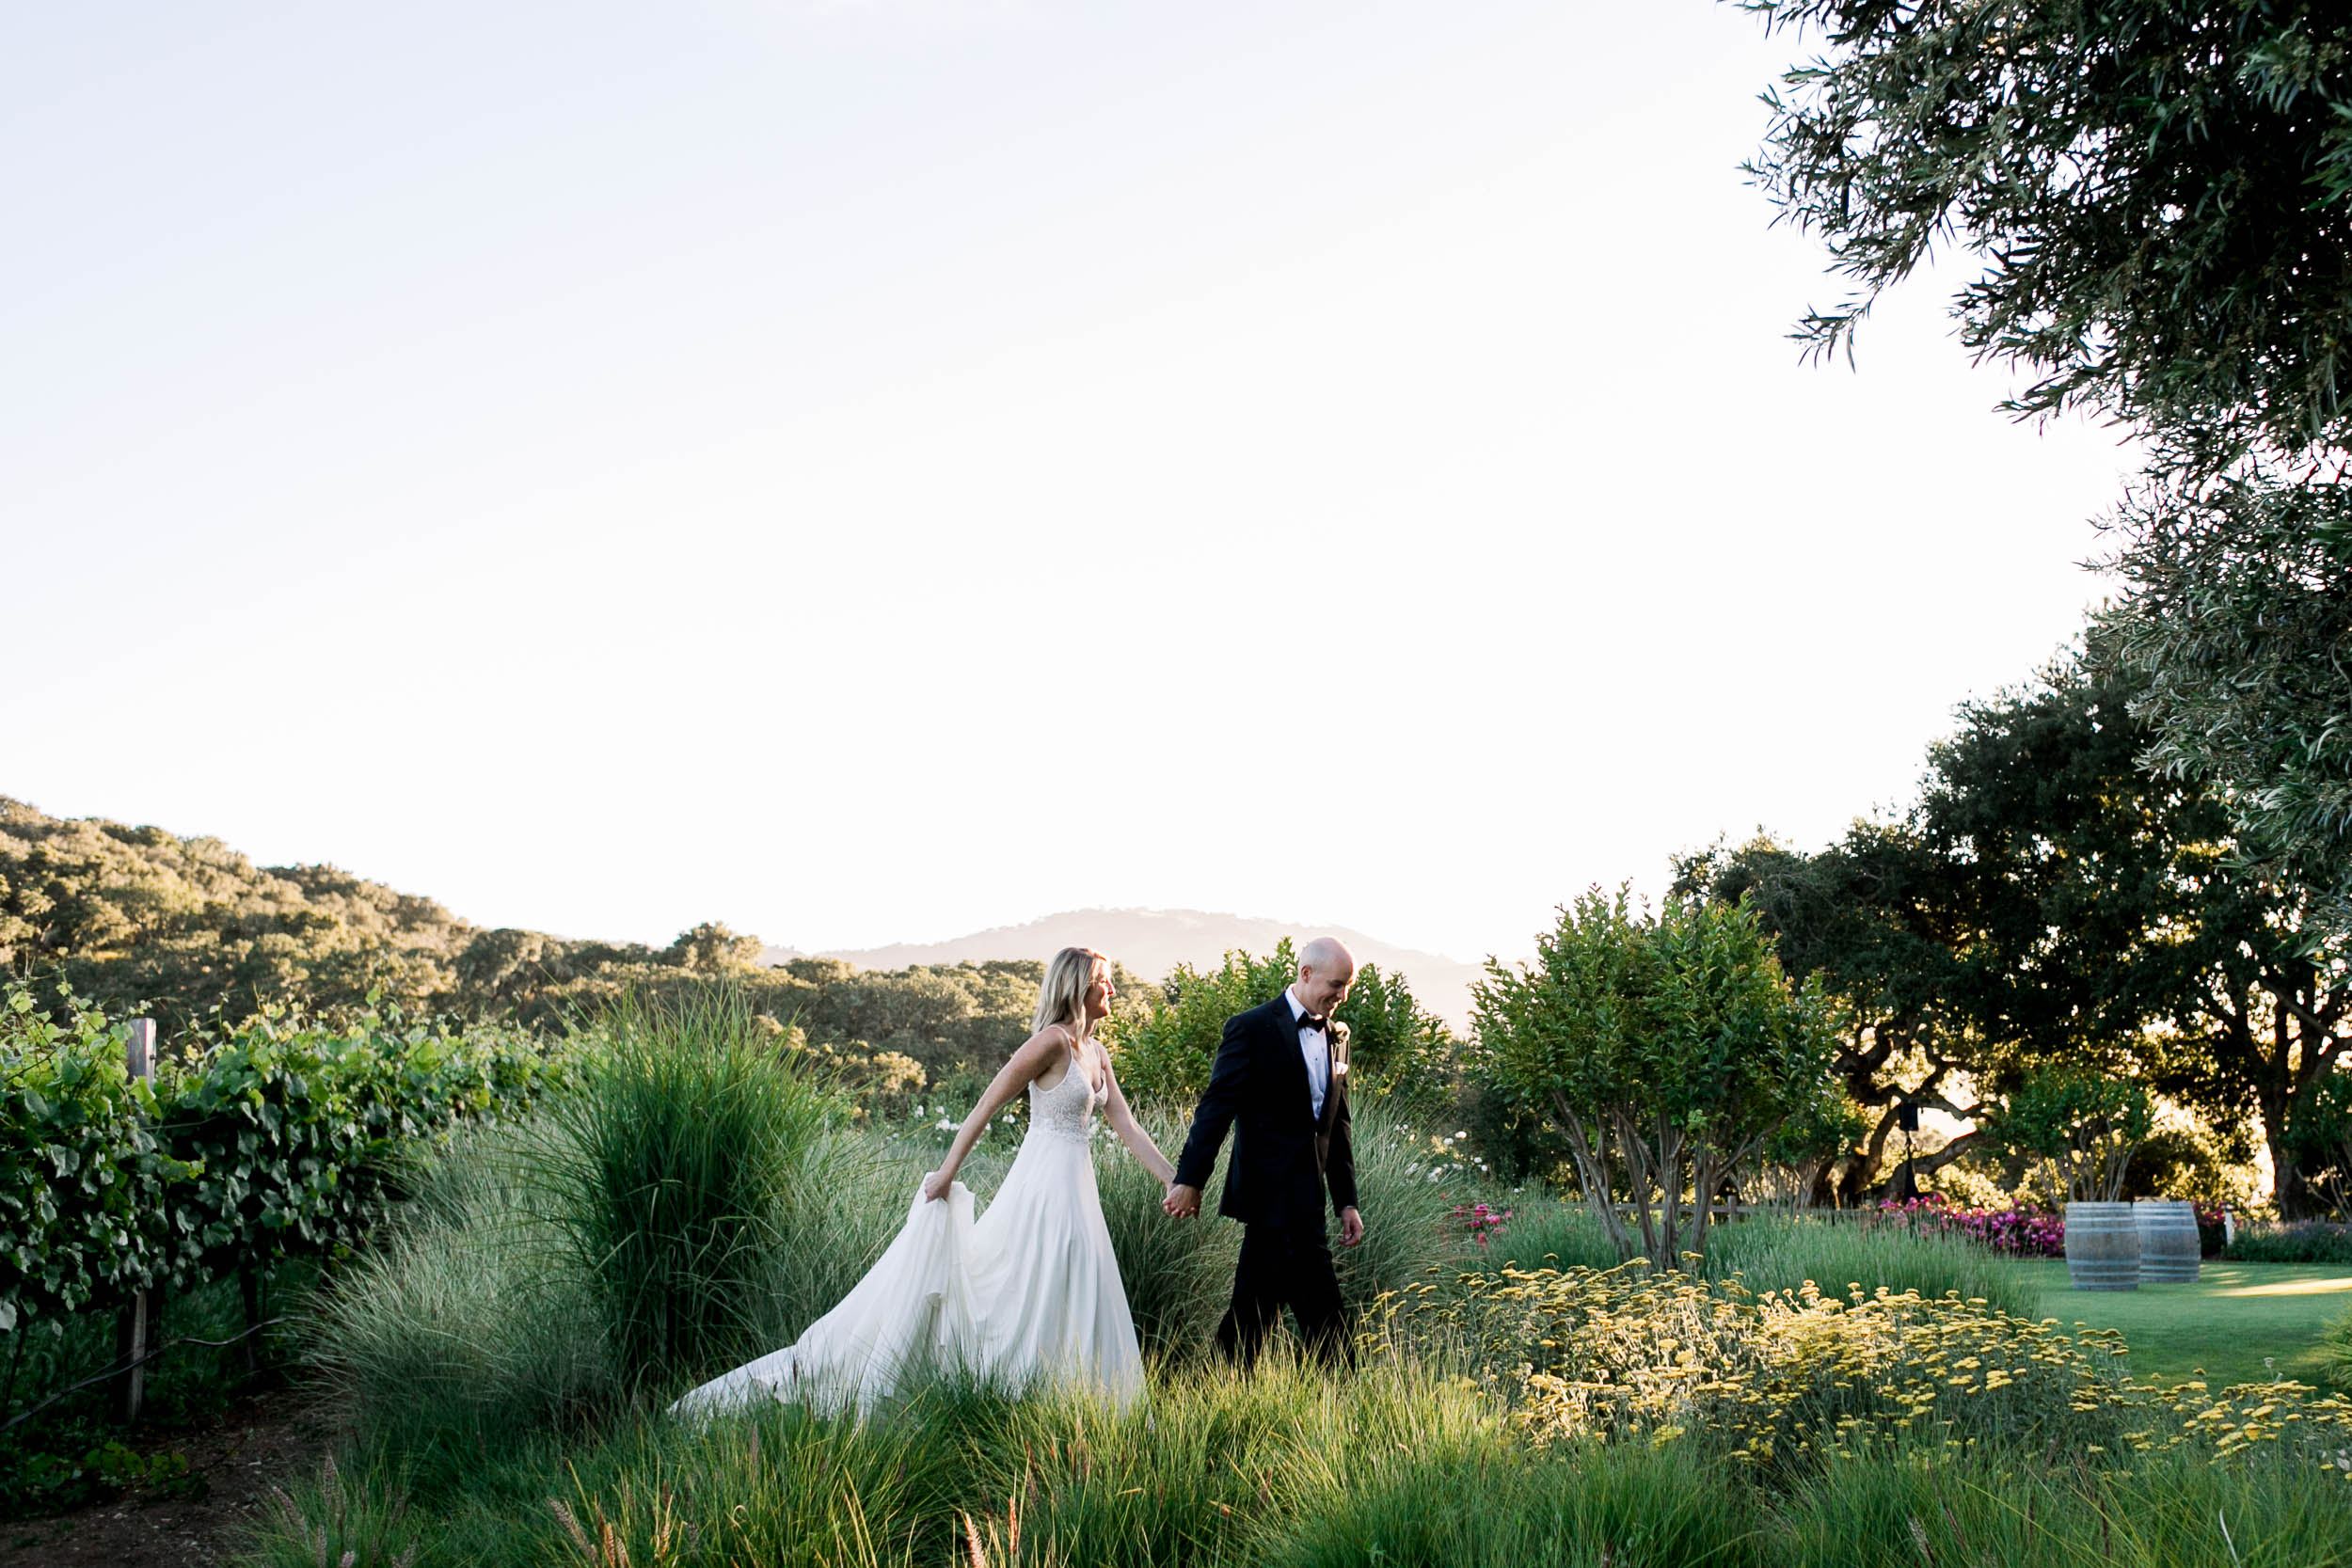 C+D_Holman Ranch Wedding_Carmel Valley_Buena Lane Photography_060619_ER709.jpg